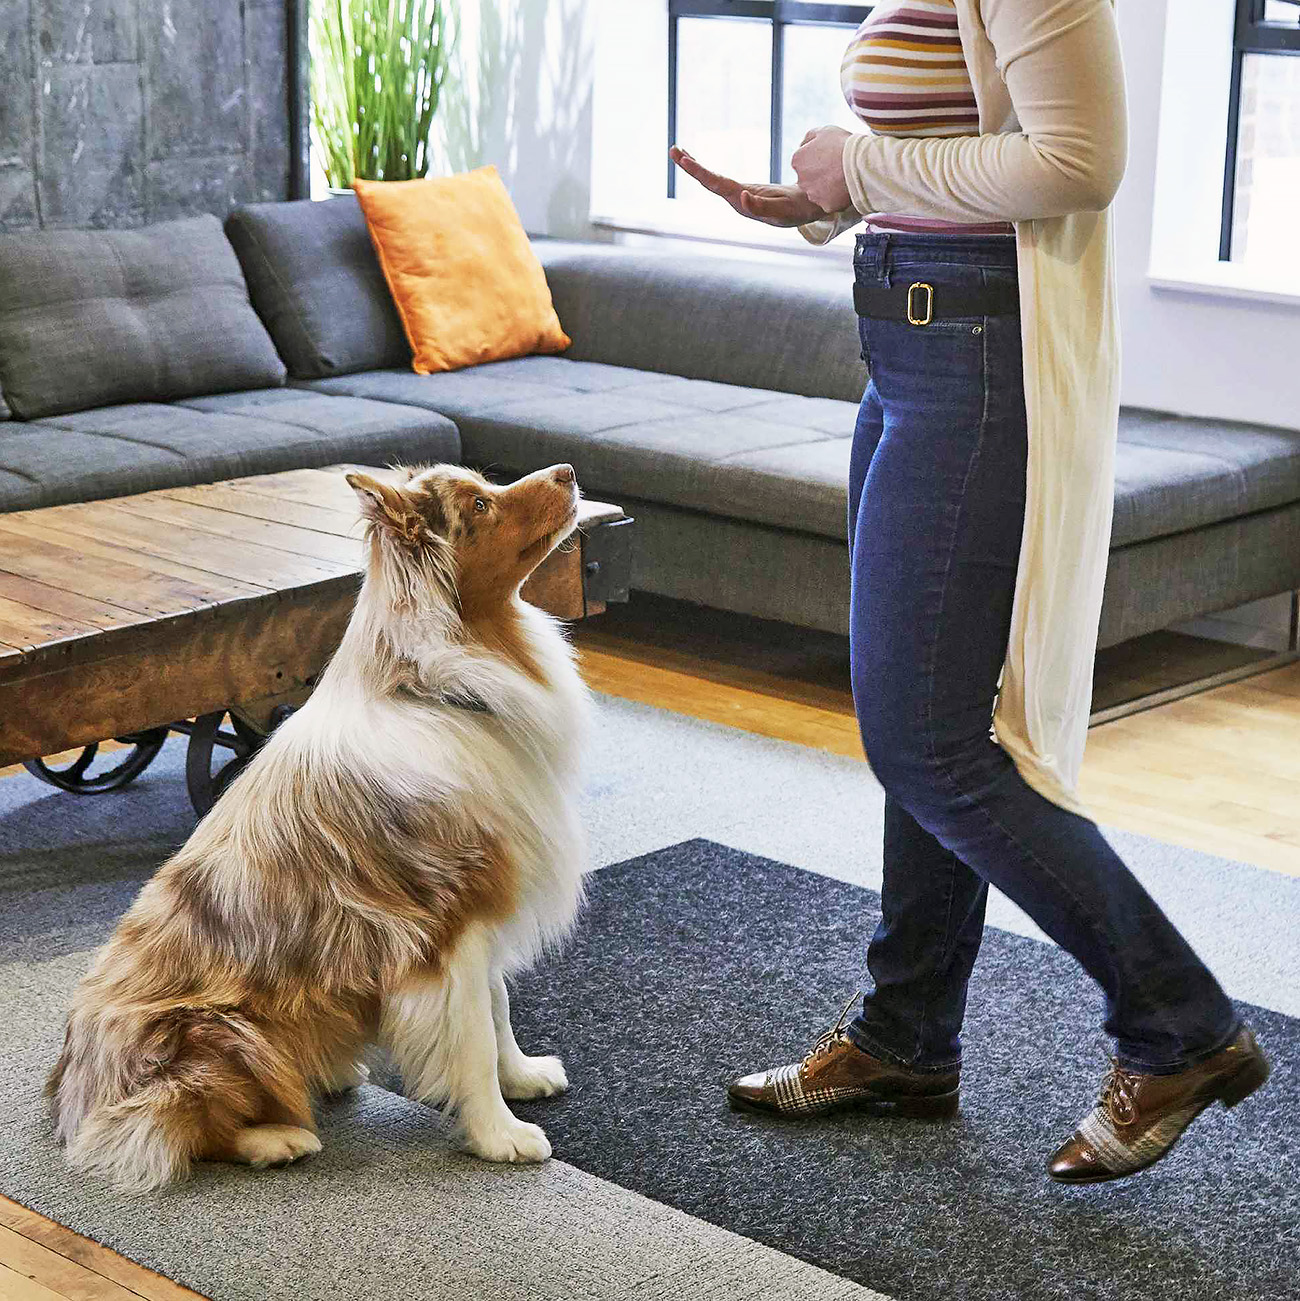 Owner signals stay to sitting dog